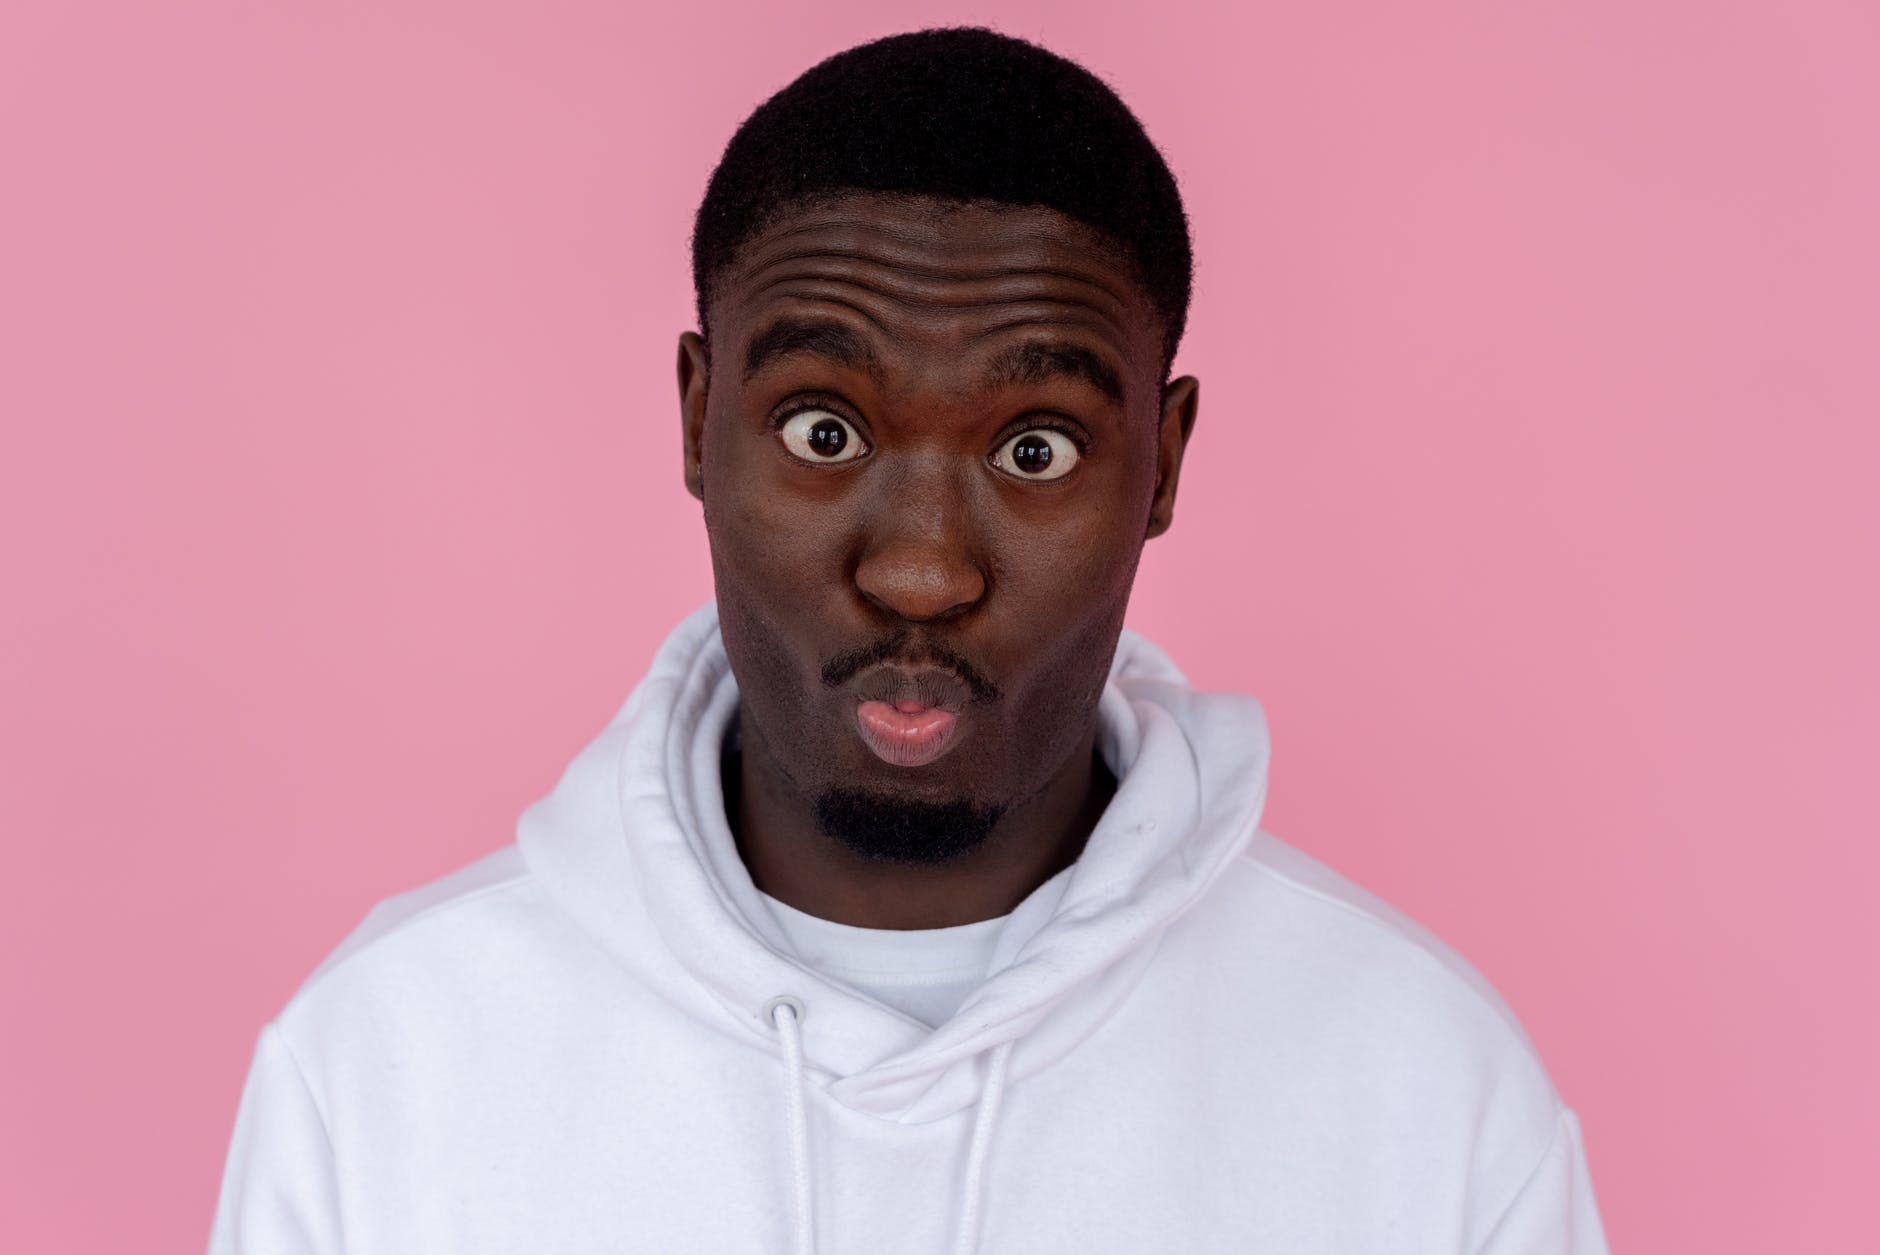 funny black man making grimace and pouting lips